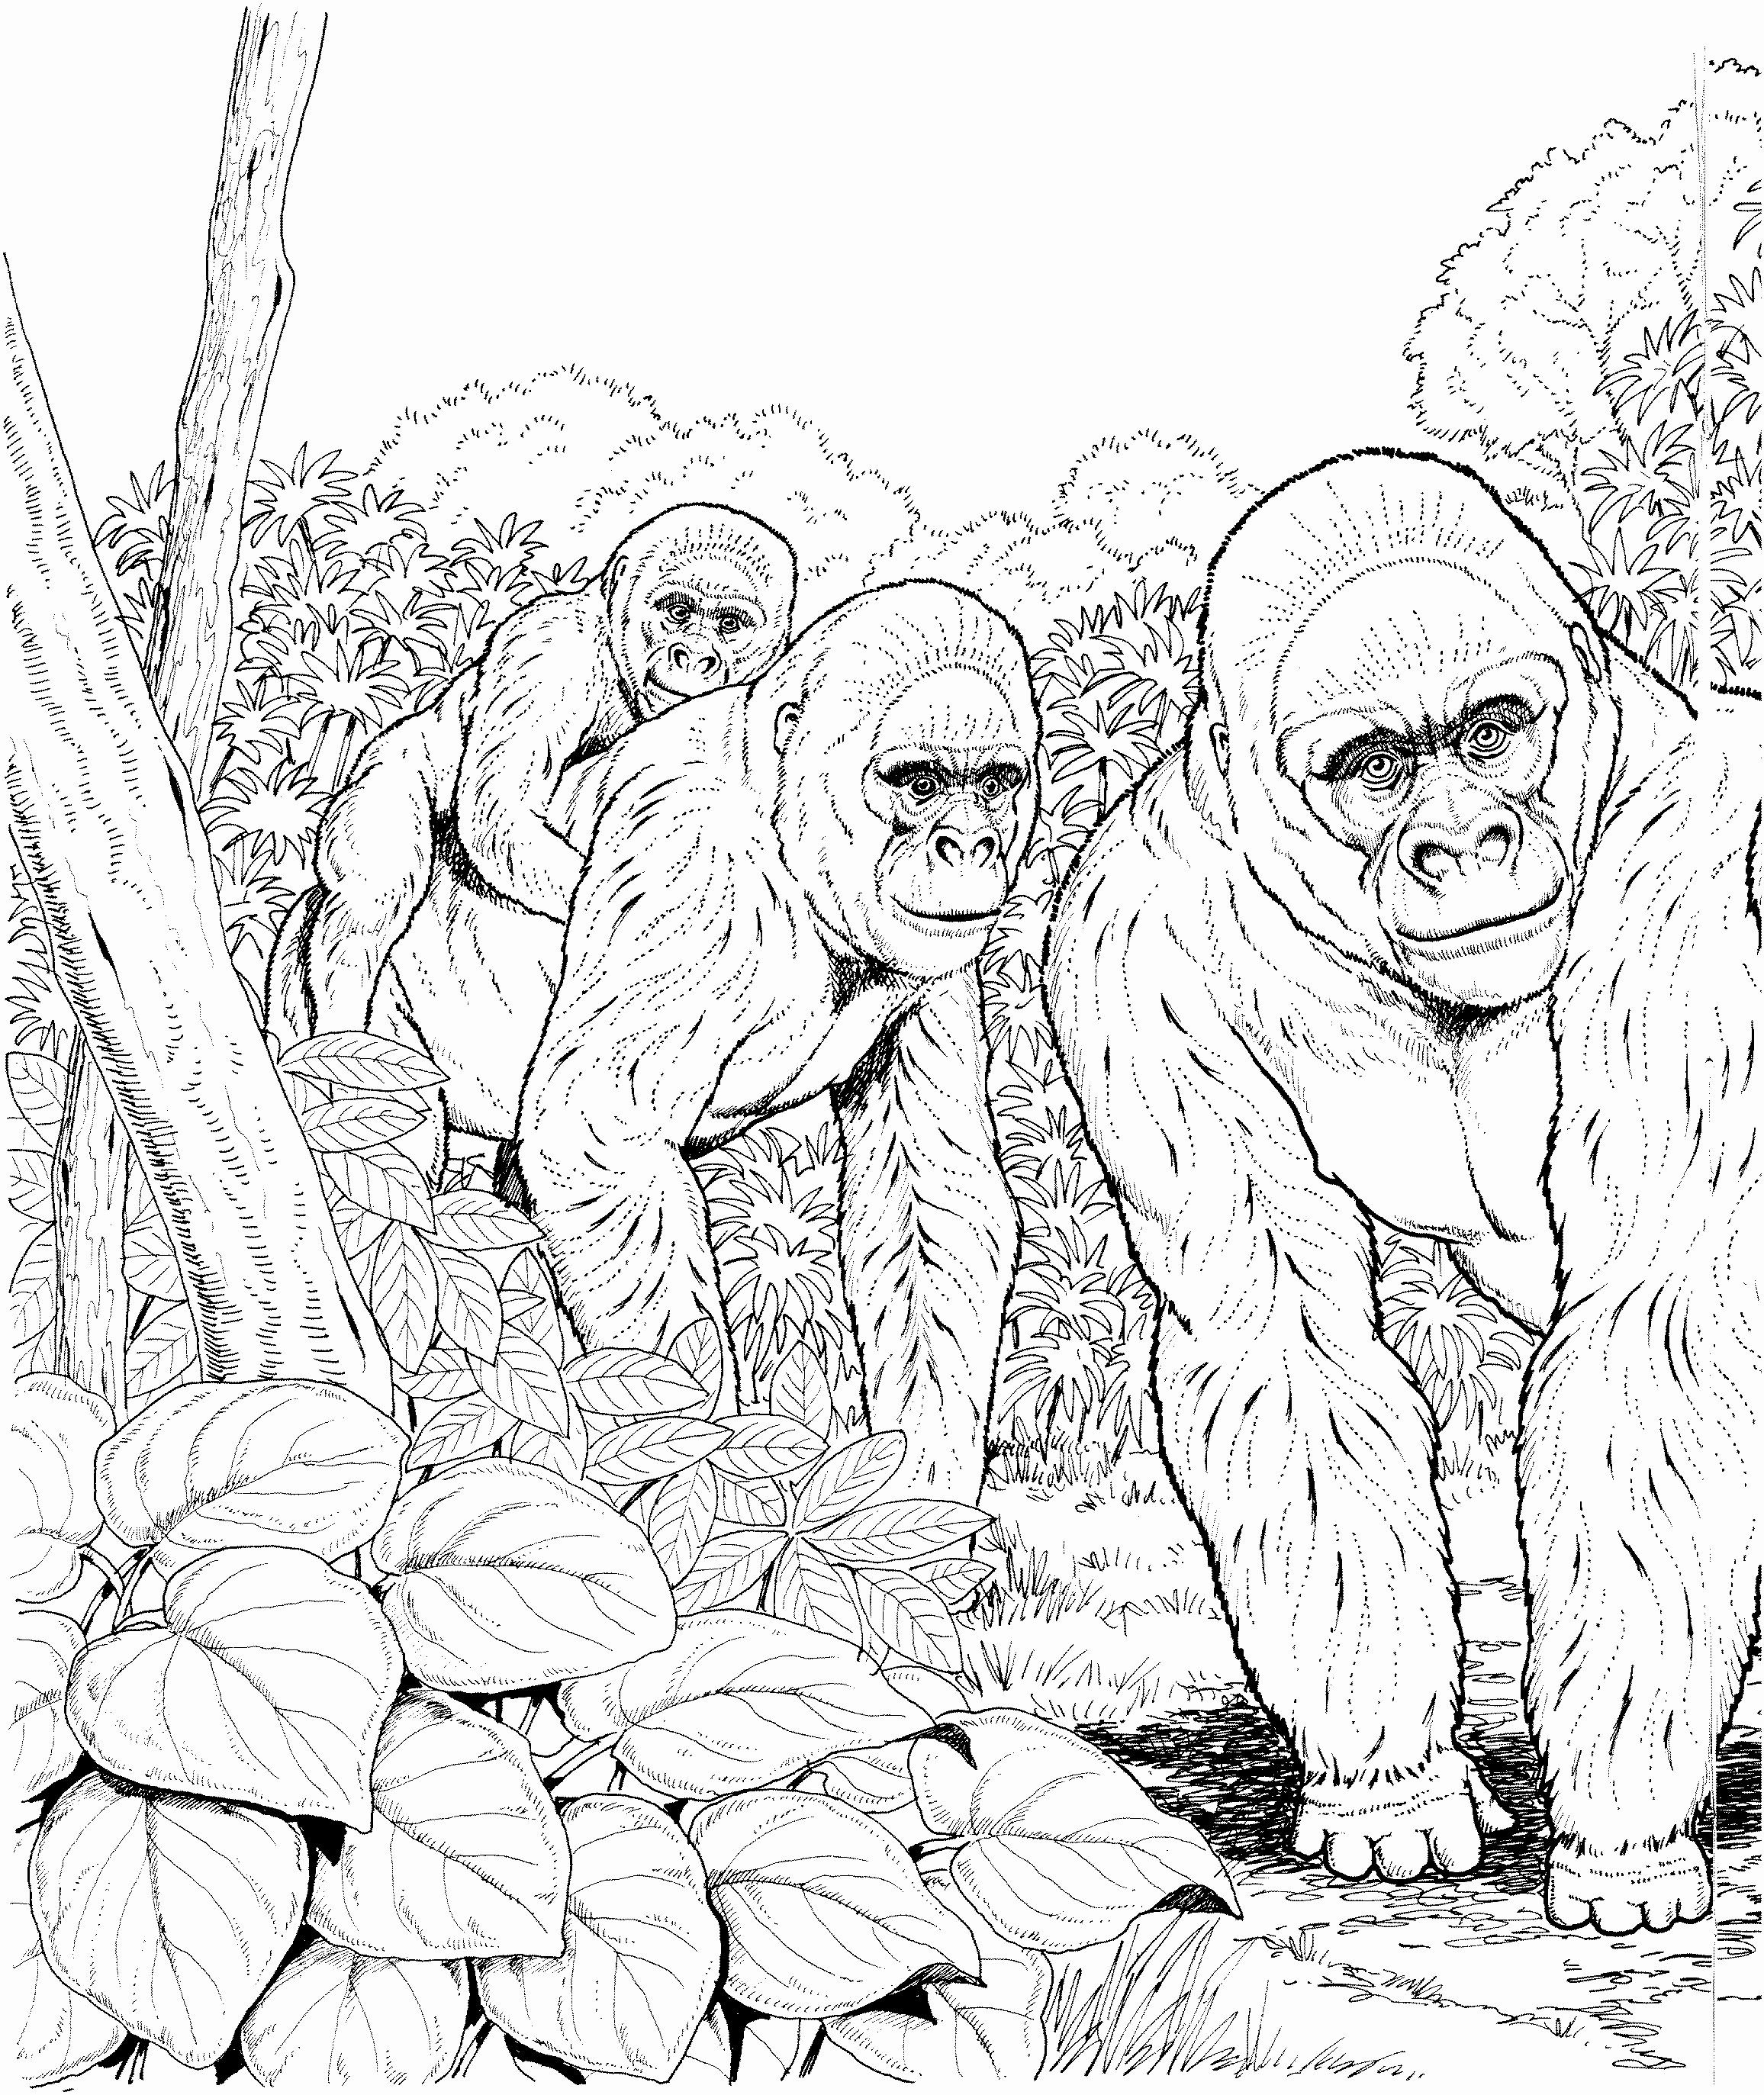 Coloring Toy Story 4 Fresh Coloring Pages Gorillas Unique Gorilla Coloring Page Forest Coloring Pages Animal Coloring Pages Coloring Pages